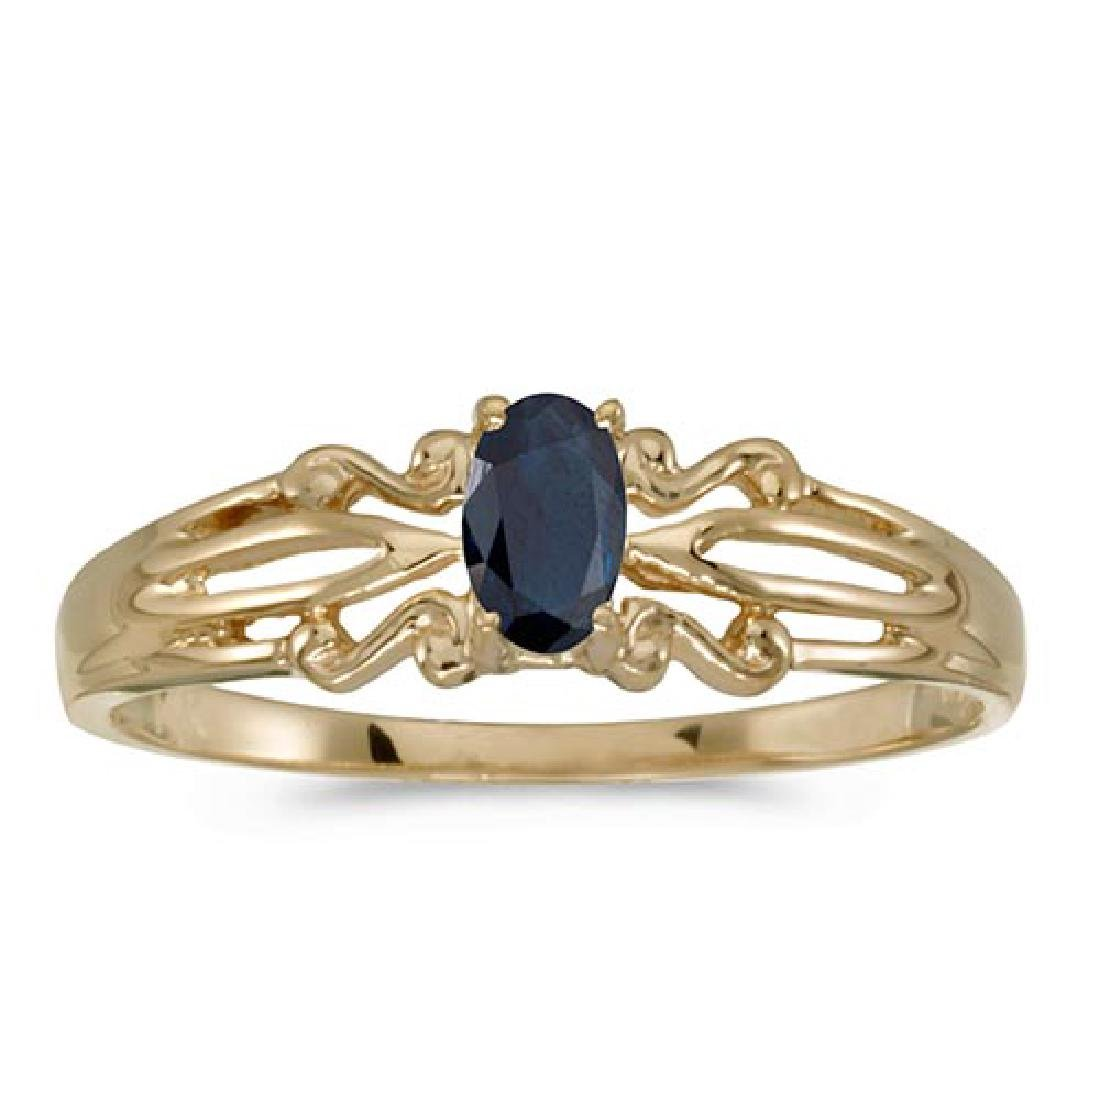 Certified 14k Yellow Gold Oval Sapphire Ring 0.25 CTW